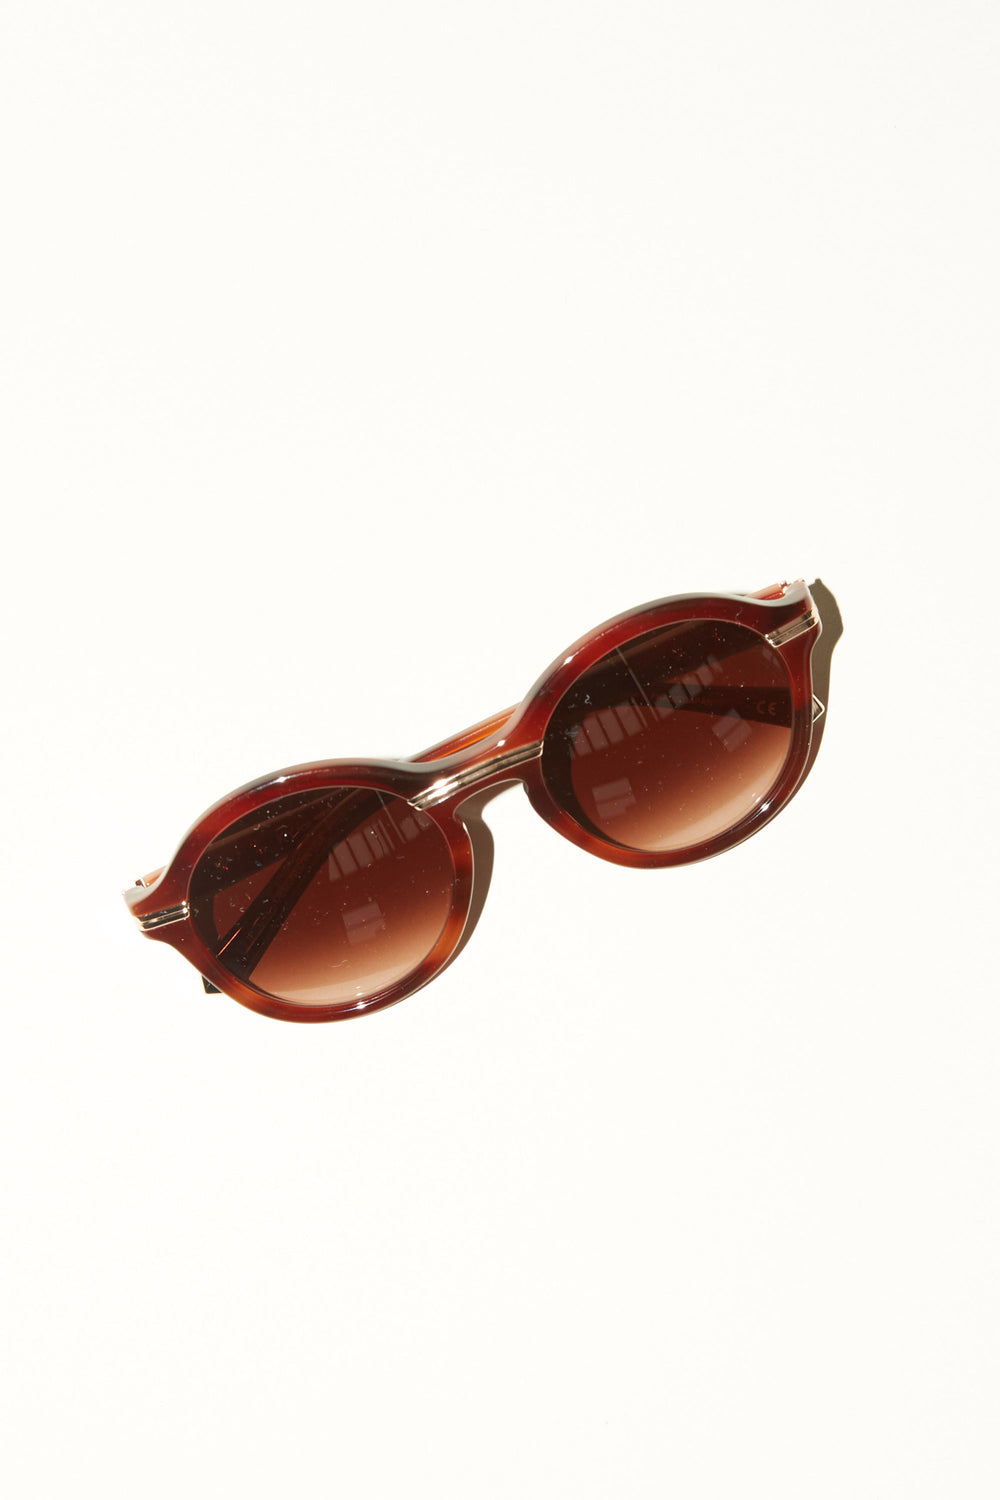 Kate Young for Tura K22 in Tortoise